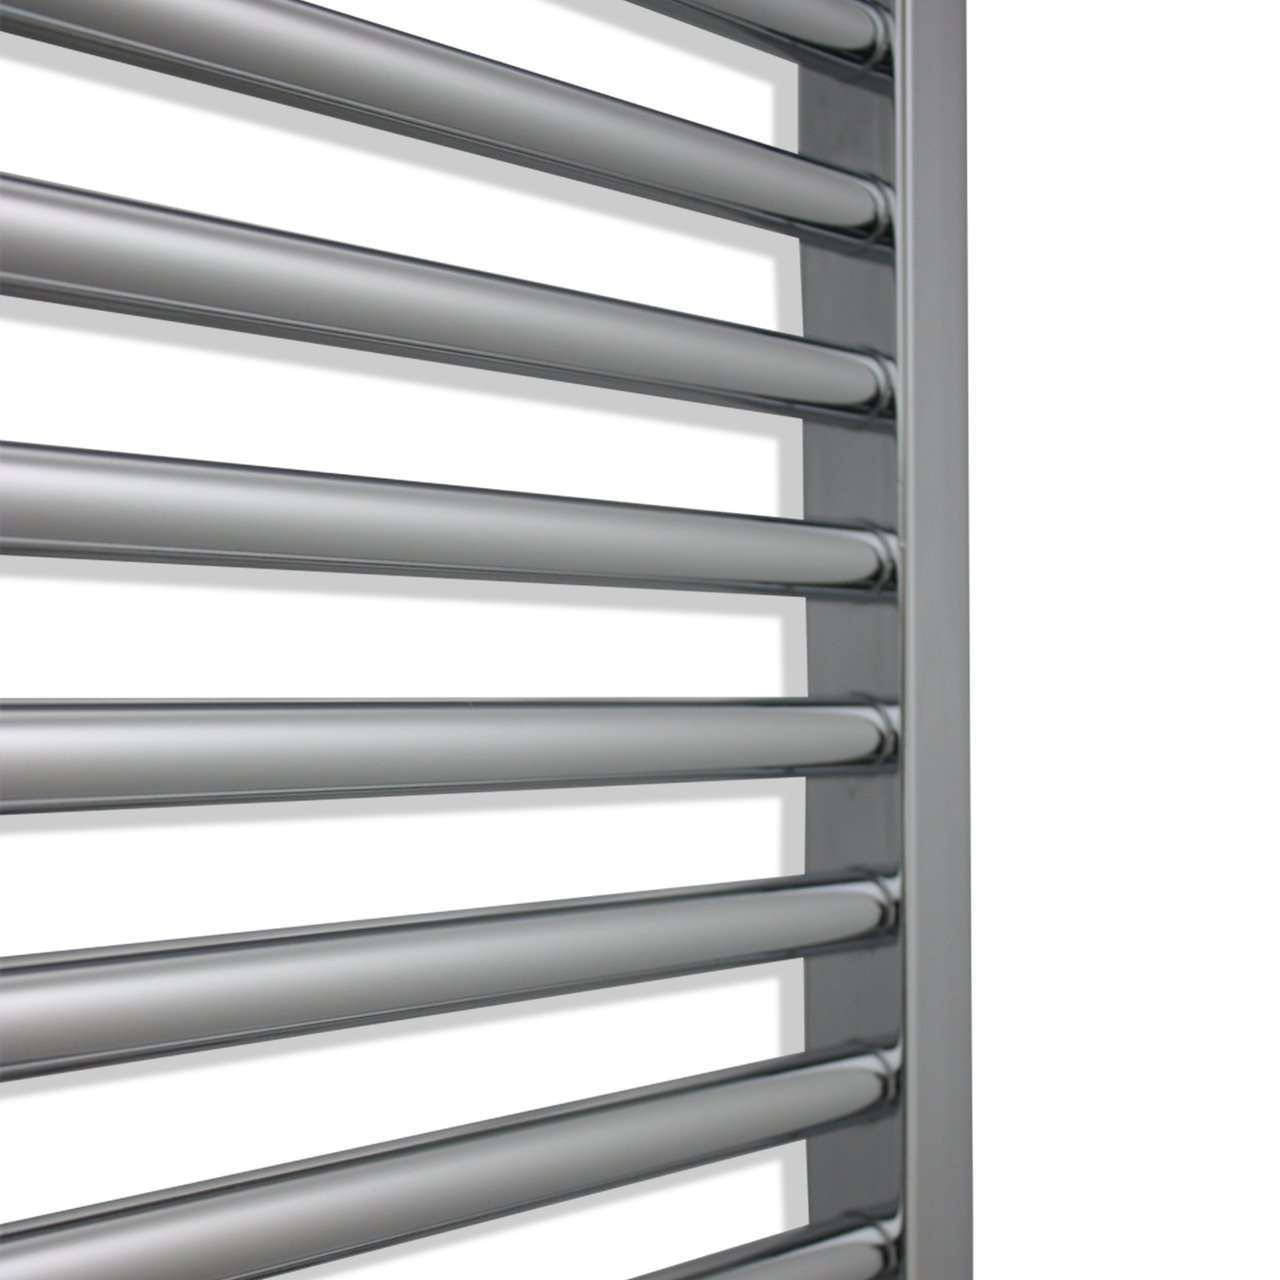 750mm Wide 400mm High Curved Chrome Heated Towel Rail Radiator HTR